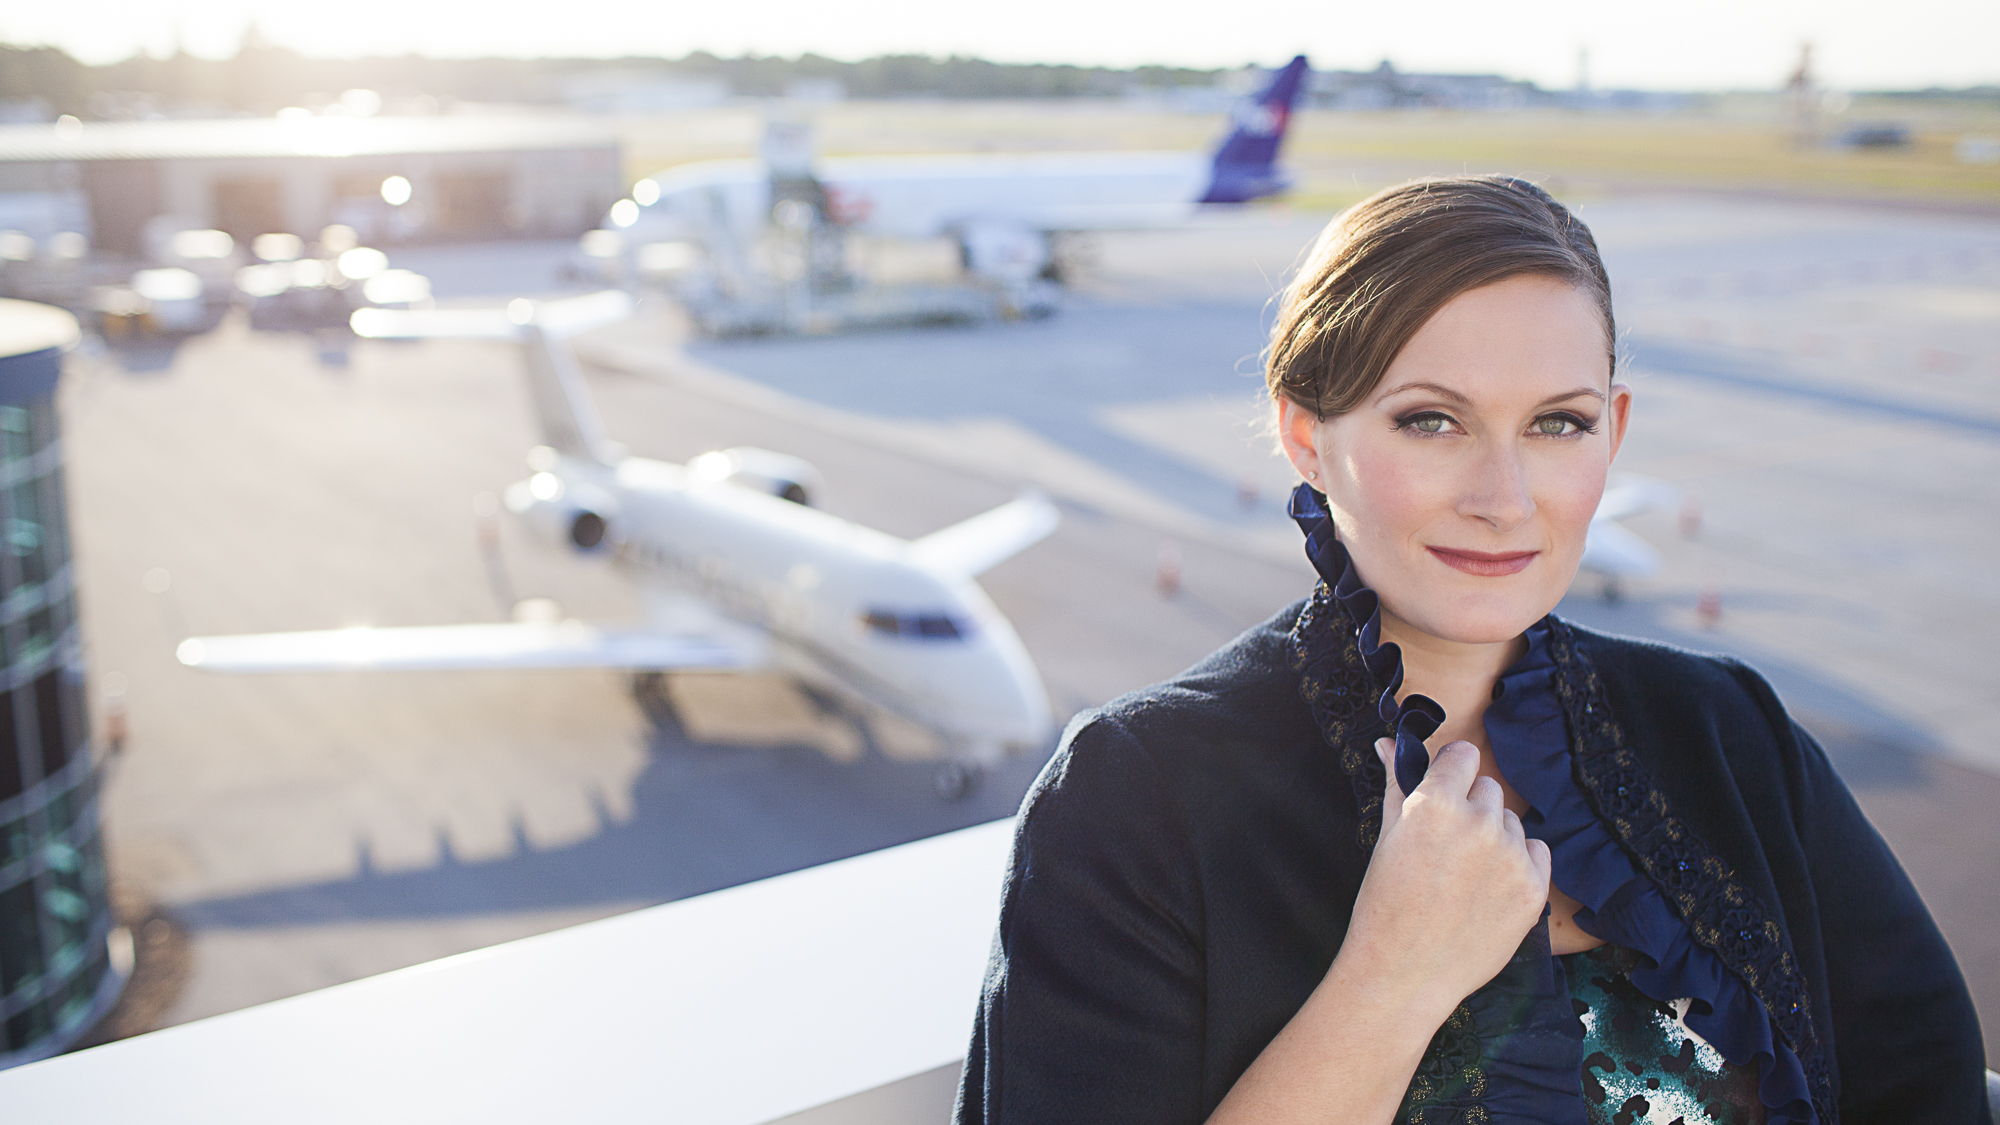 Portrait of woman in front of airplane  by Eve Event Photography